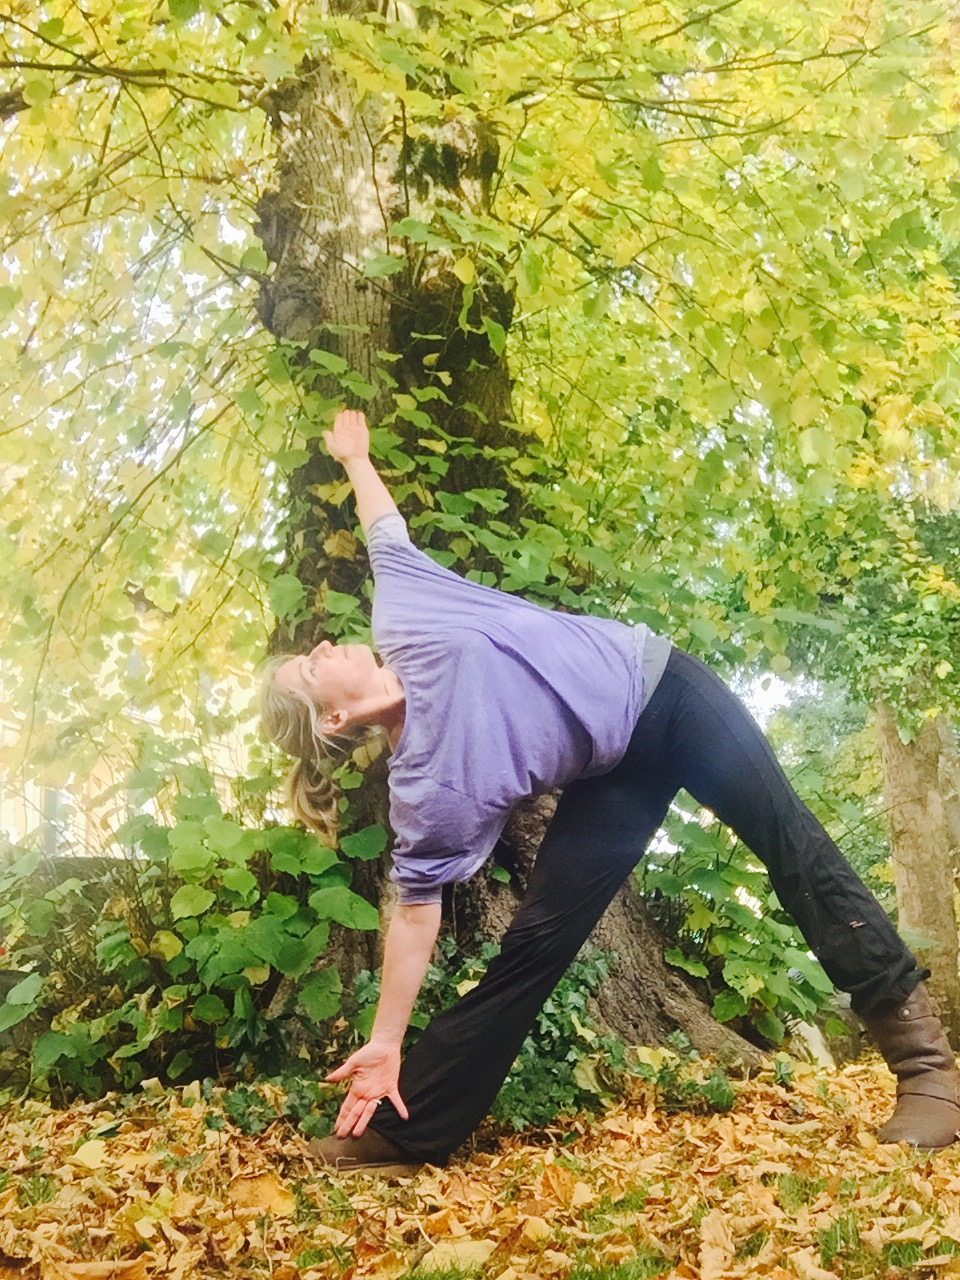 Online yoga for mums. Classes & private sessions in Westbury Park, Redland, Henleaze, Bristol. Yoga for mums, beginners, weight loss, fitness, pregnancy & postnatal mums.